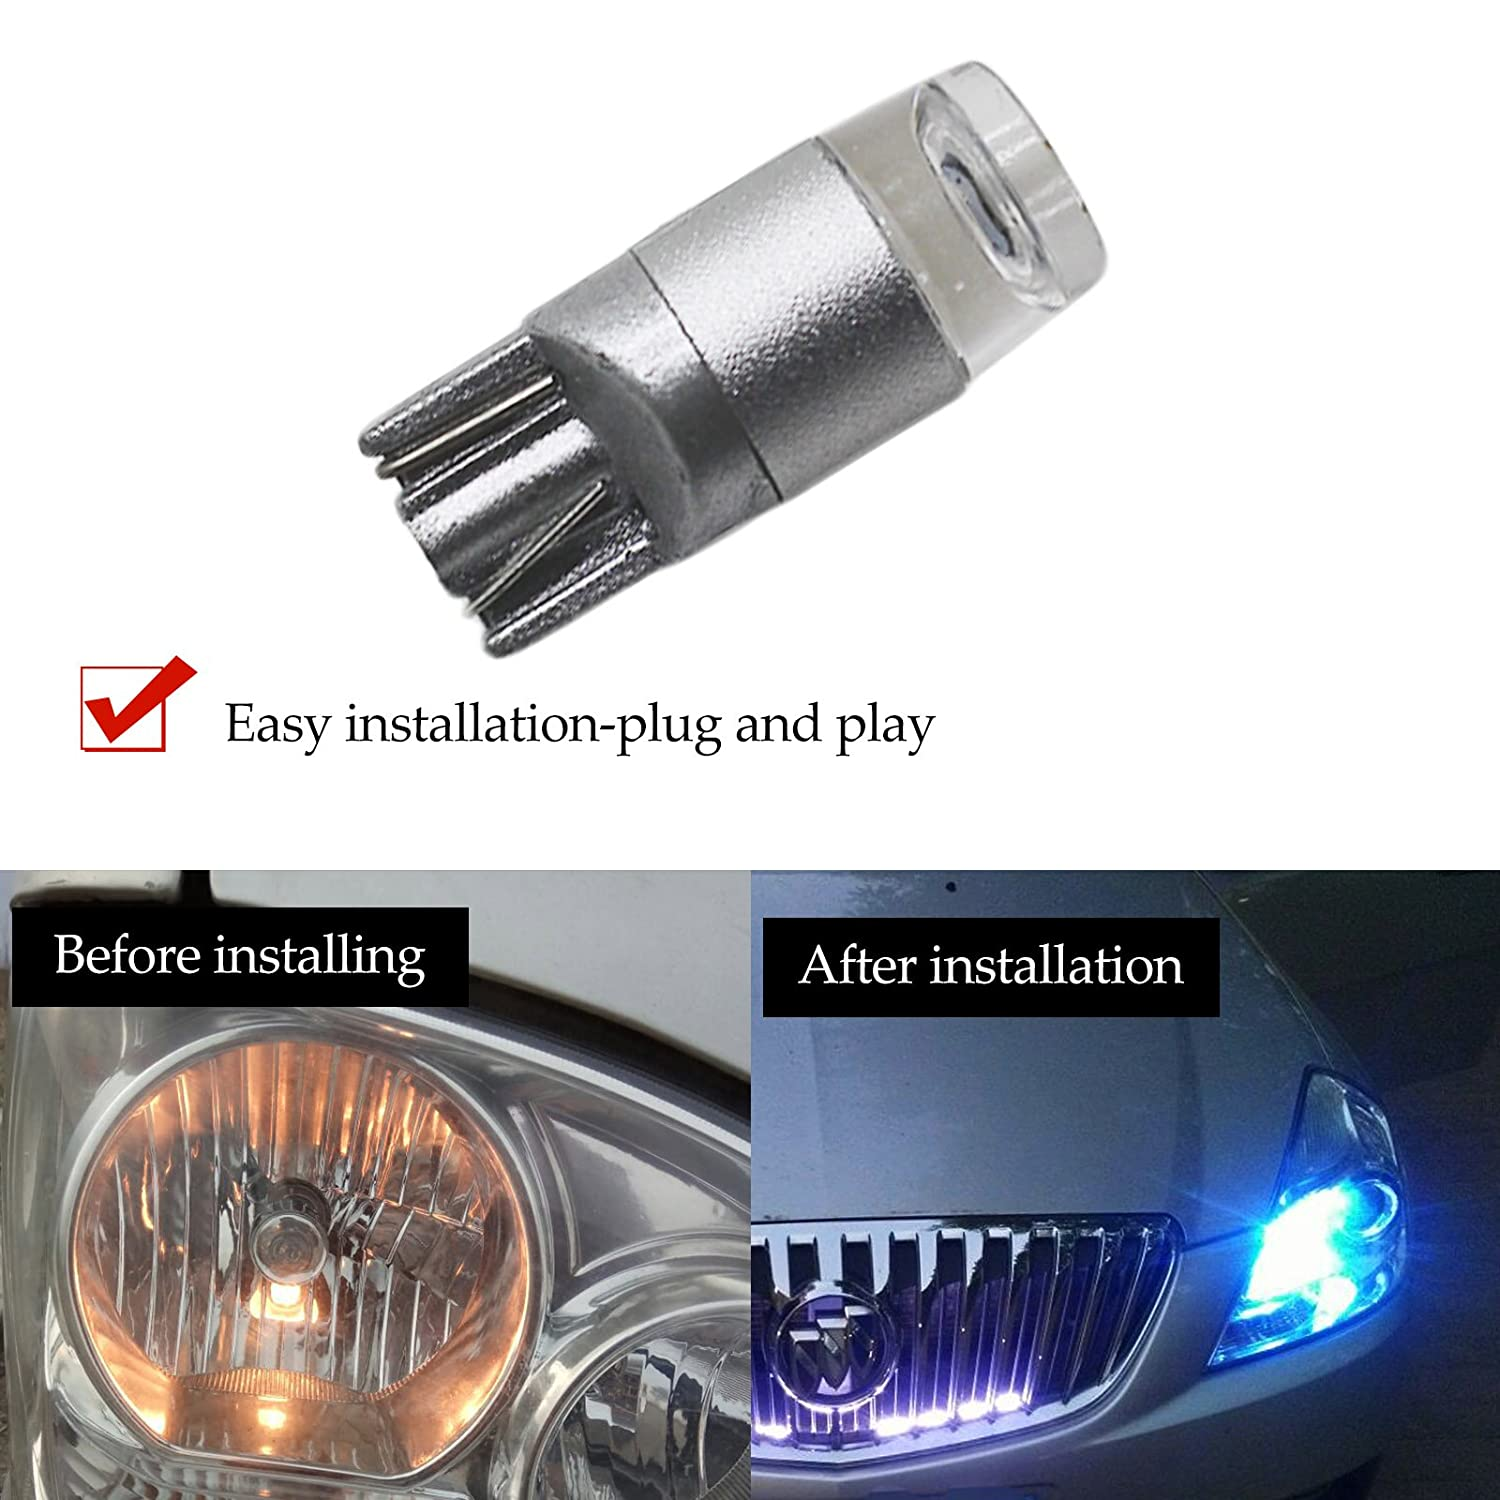 YaaGoo Compact Small bulb License Plate Lights Lamp,T10 168 194 2825 W5W,ice blue,6pcs